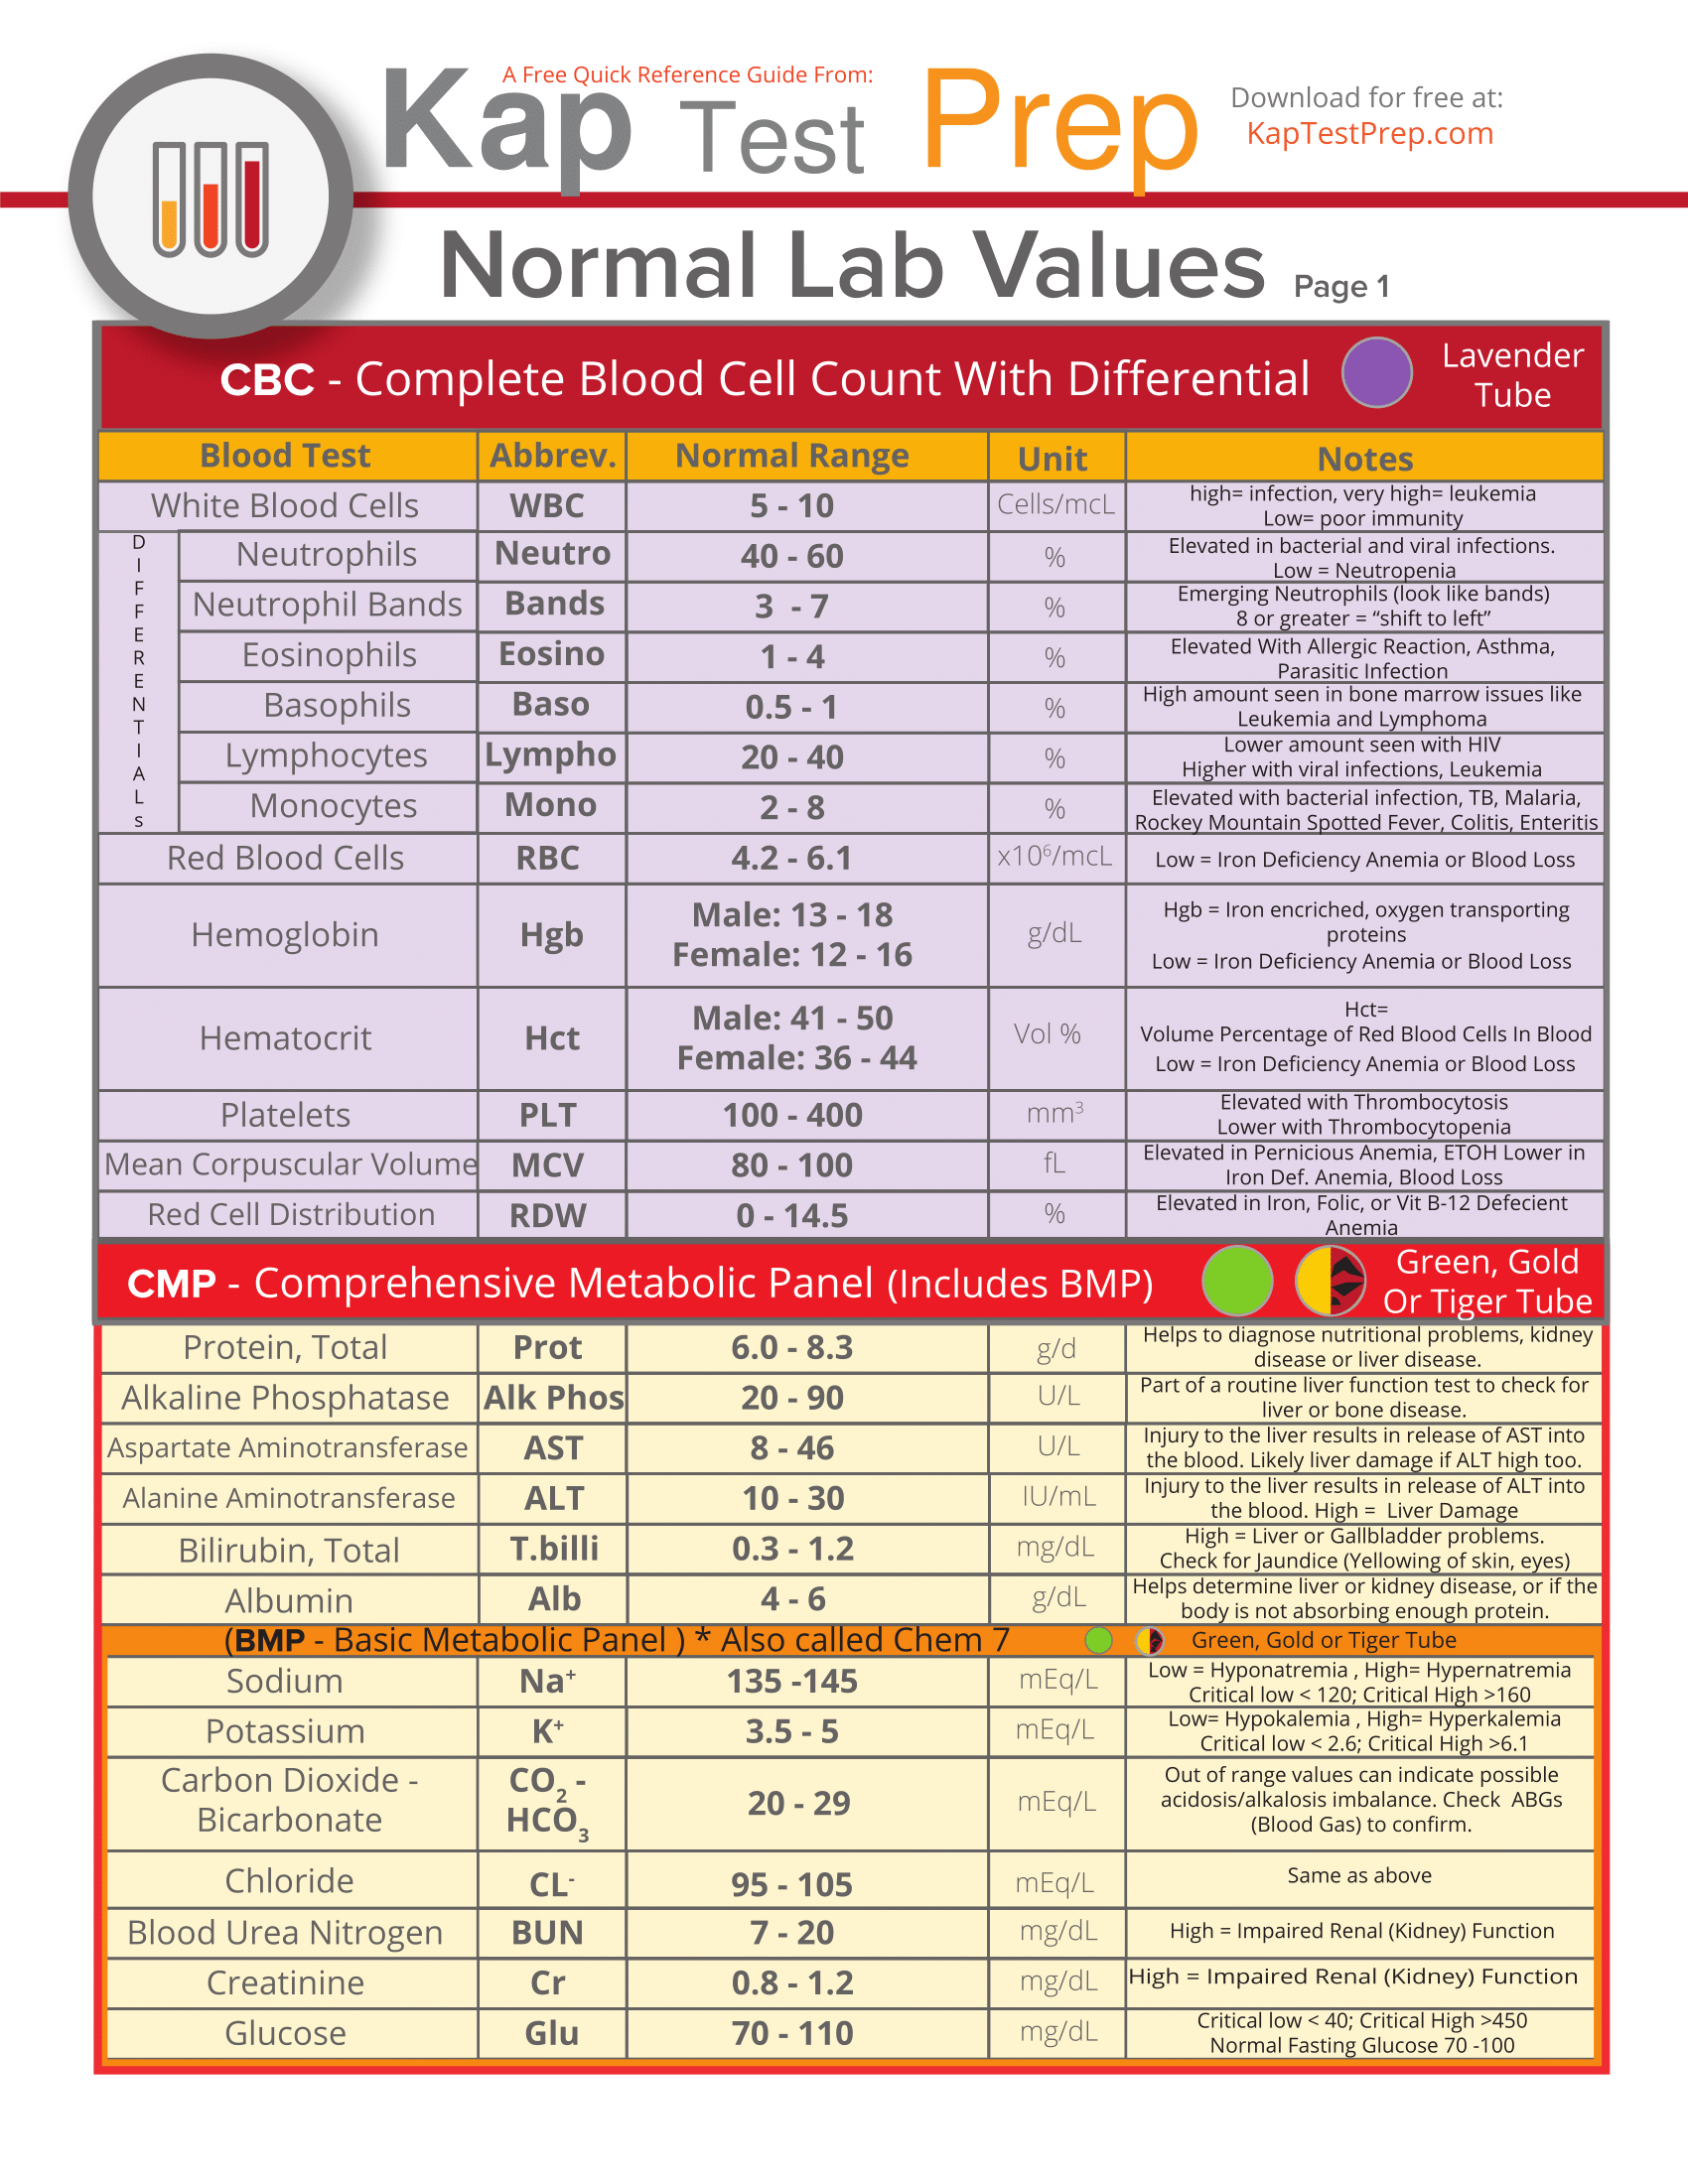 Dynamite image for normal lab values chart printable